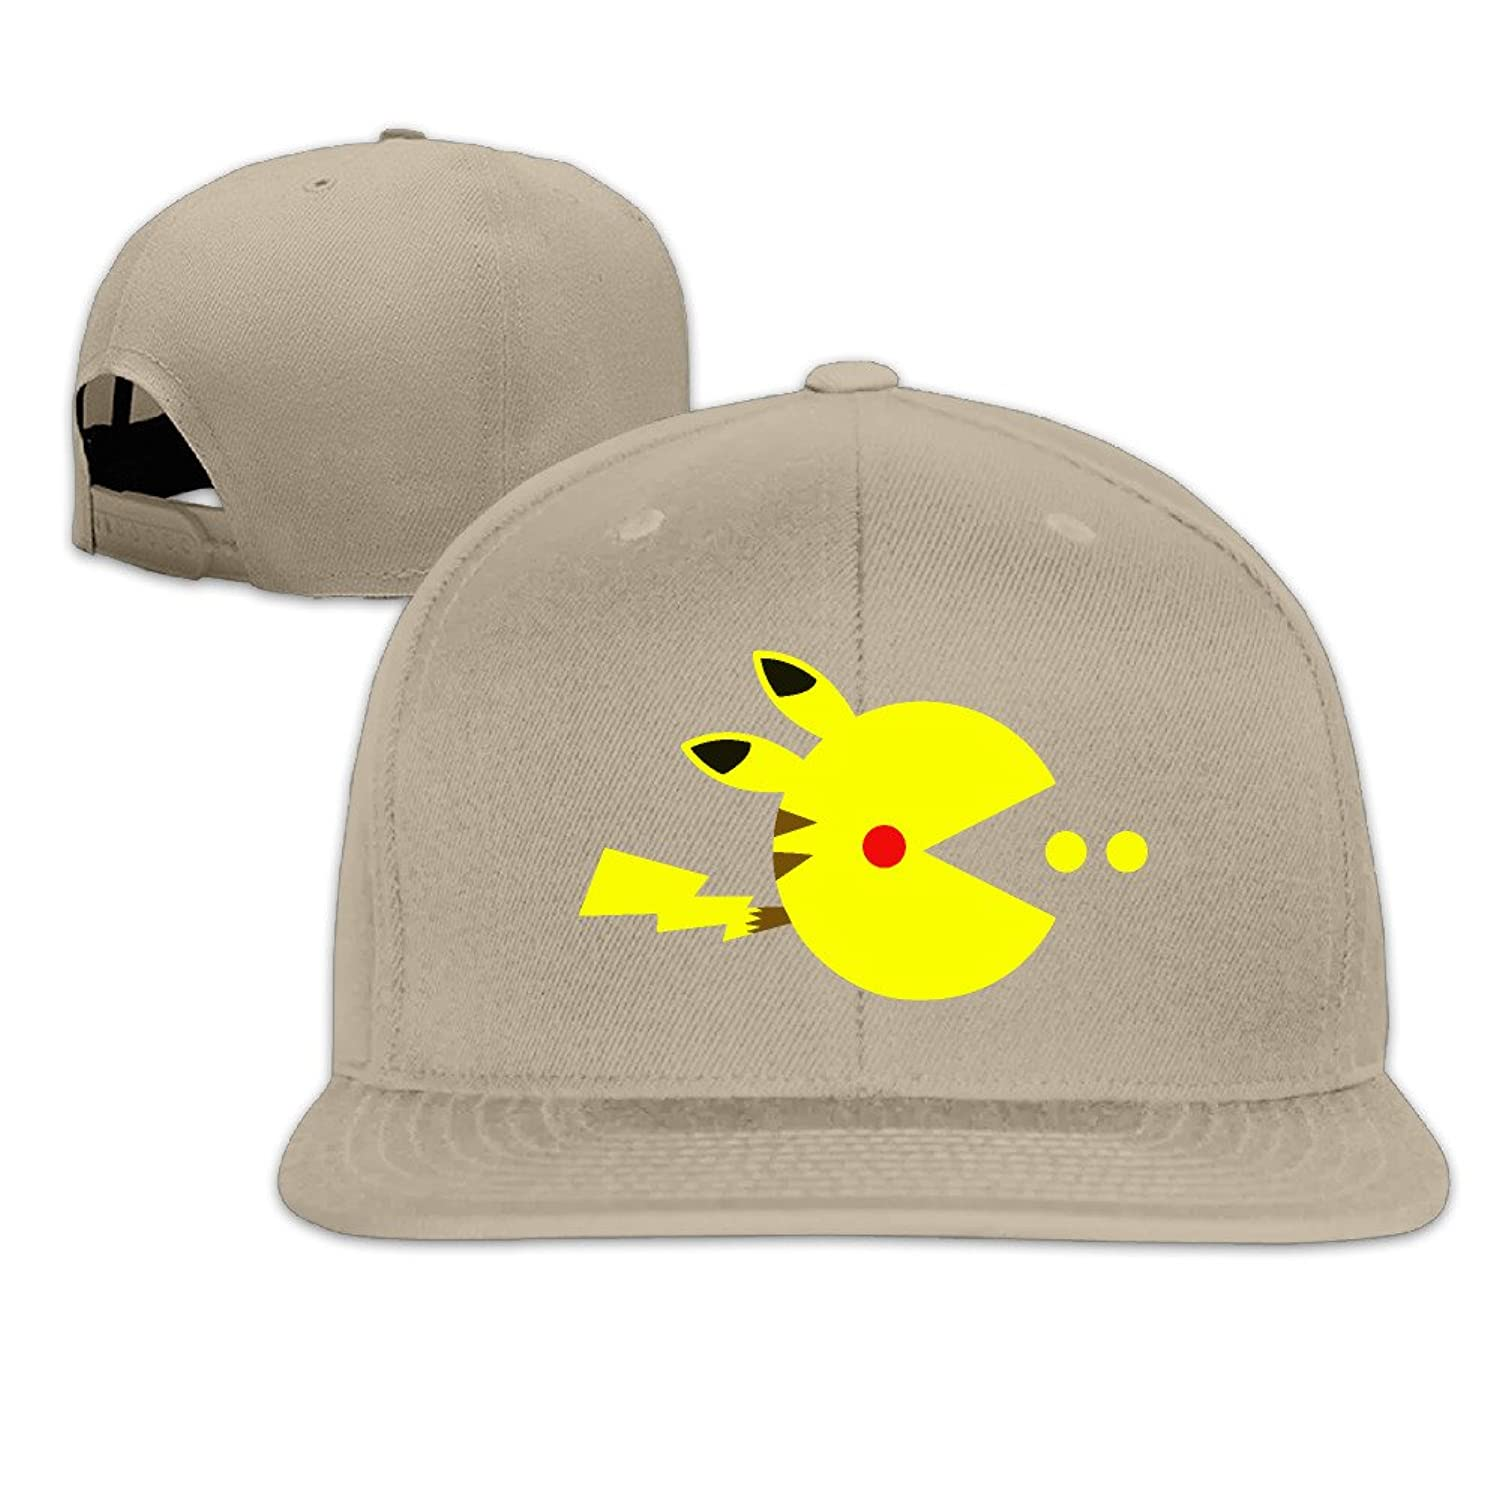 MYDT1 Pac-pikachu Flat Baseball Caps Hats For Unisex